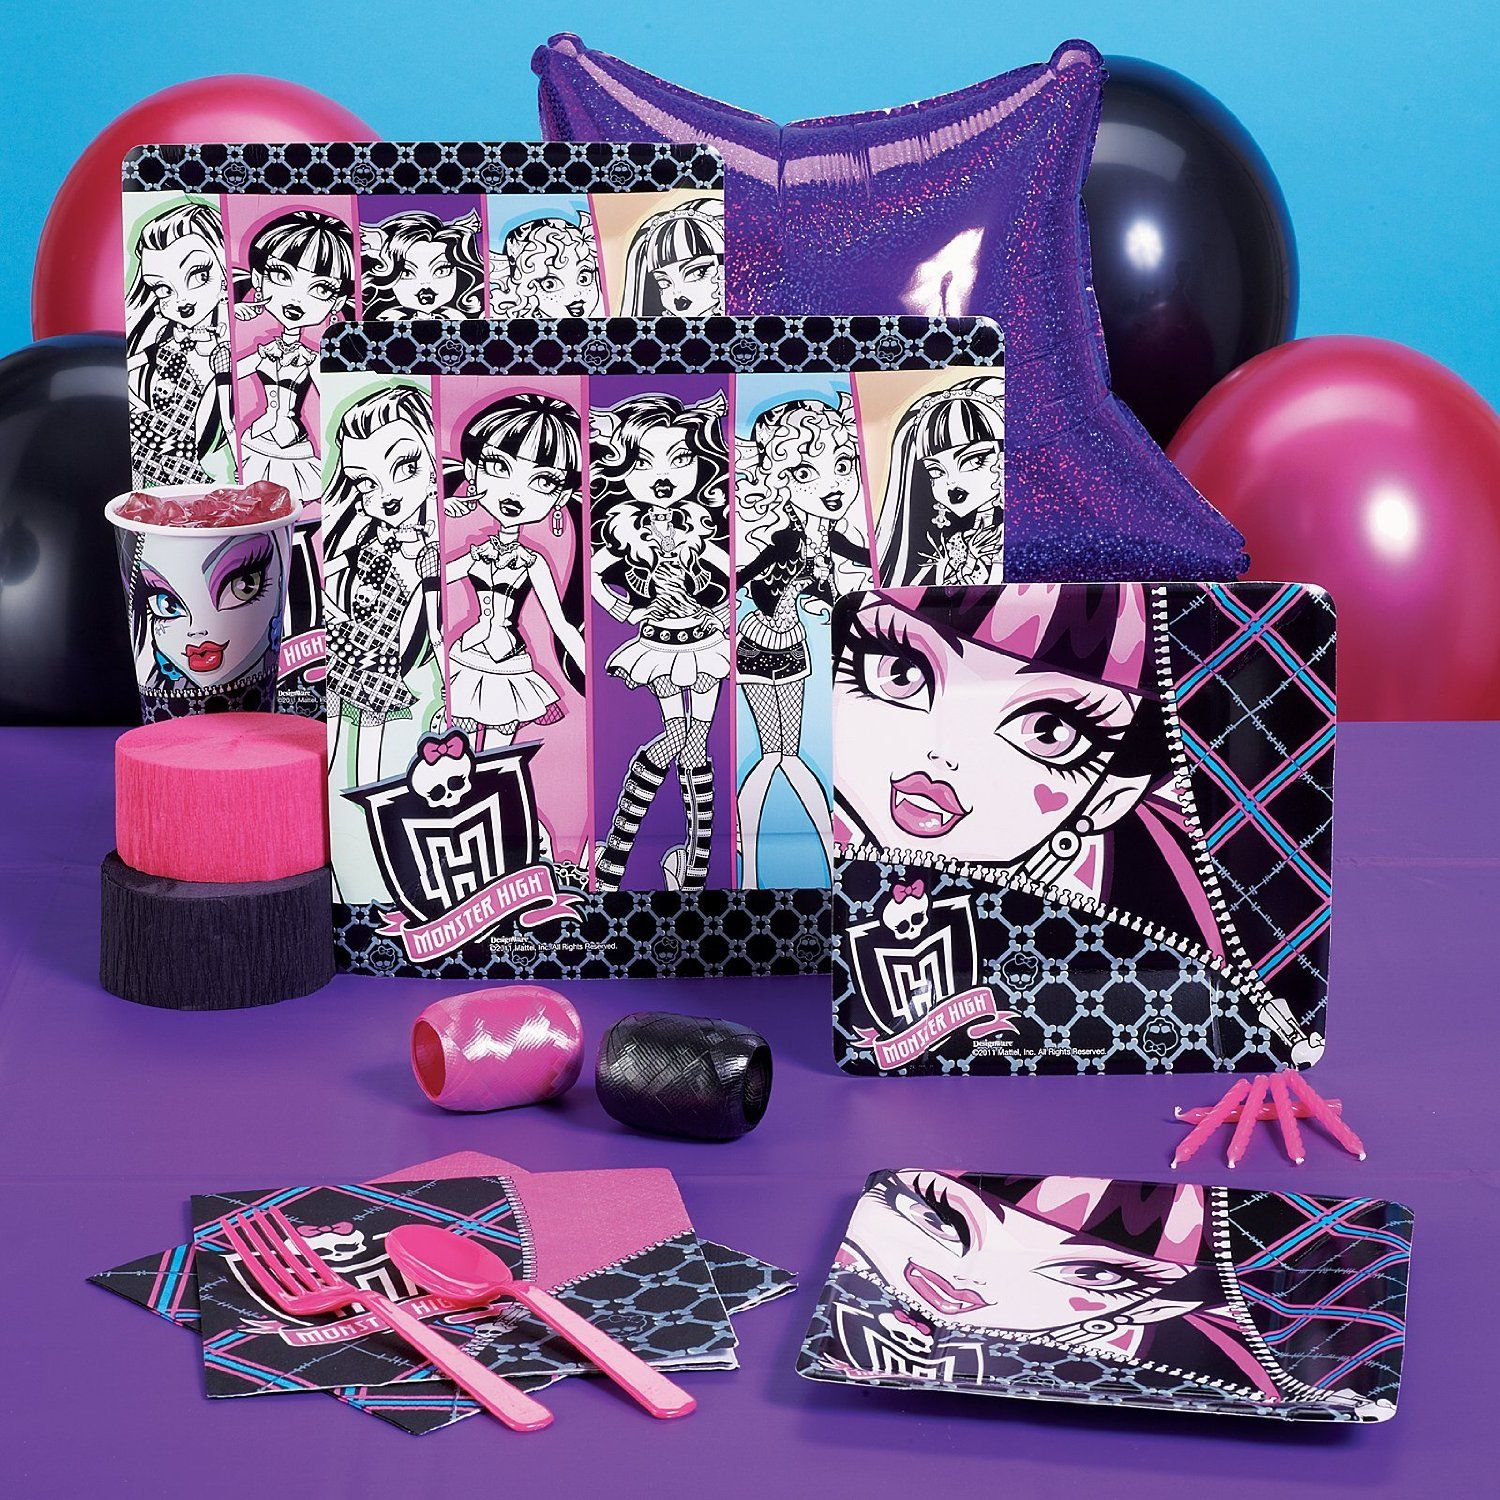 10 Year Girl Birthday Party Ideas Kids' Supplies Monster High